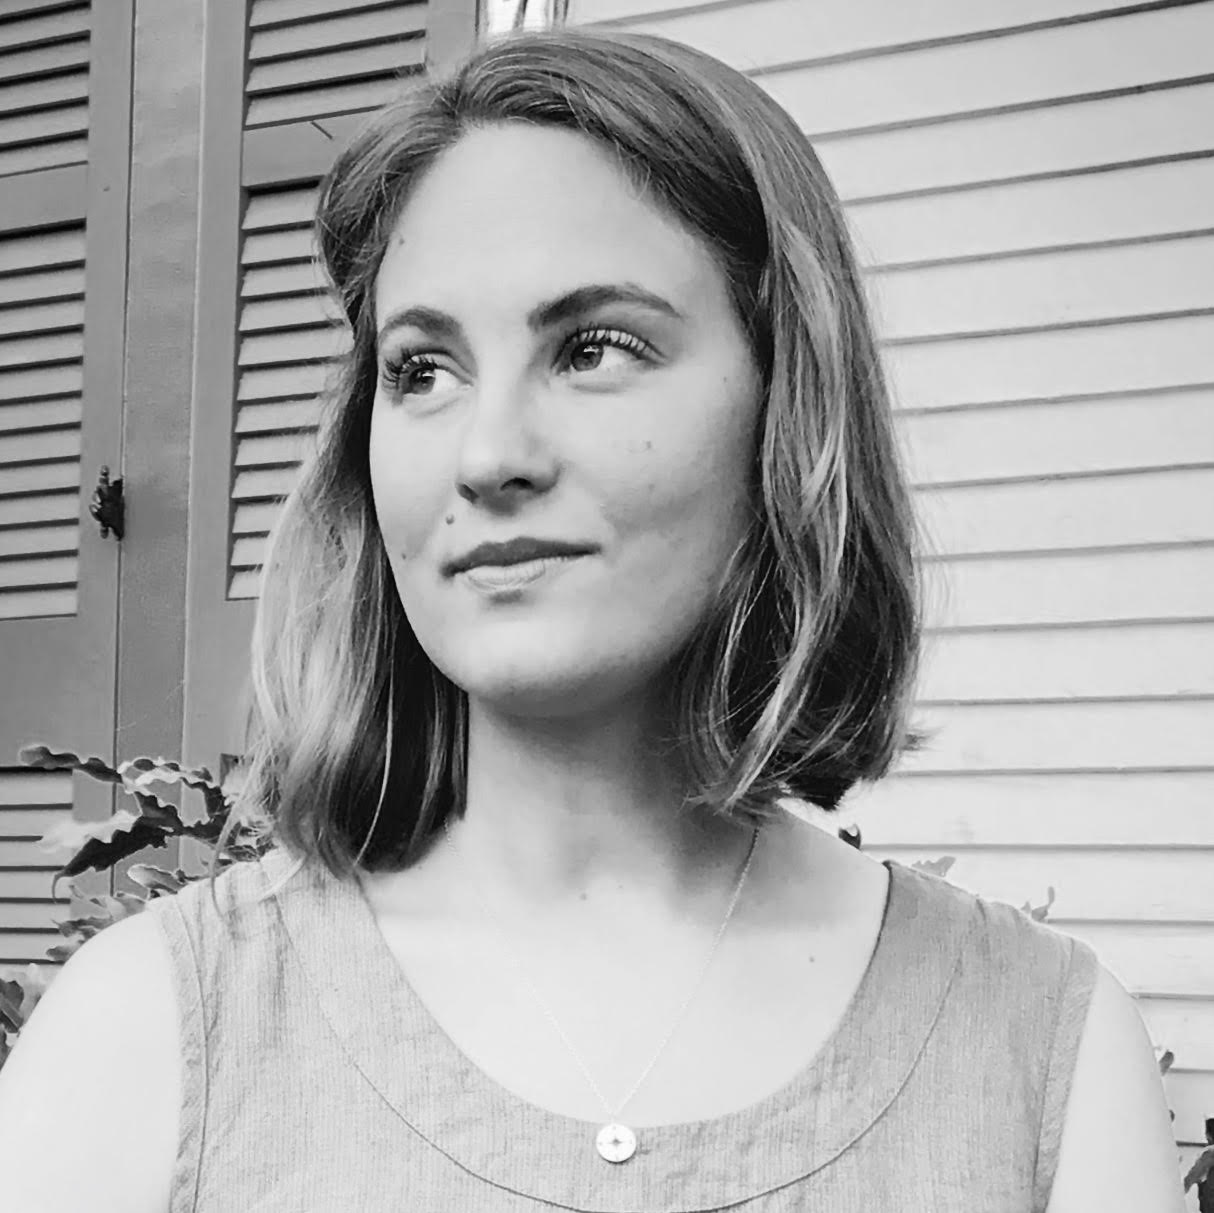 A black and white photo of Lindsay Sproul, a white woman with short blond hair. She looks off into the distance and wears a linen tank top with a small necklace.